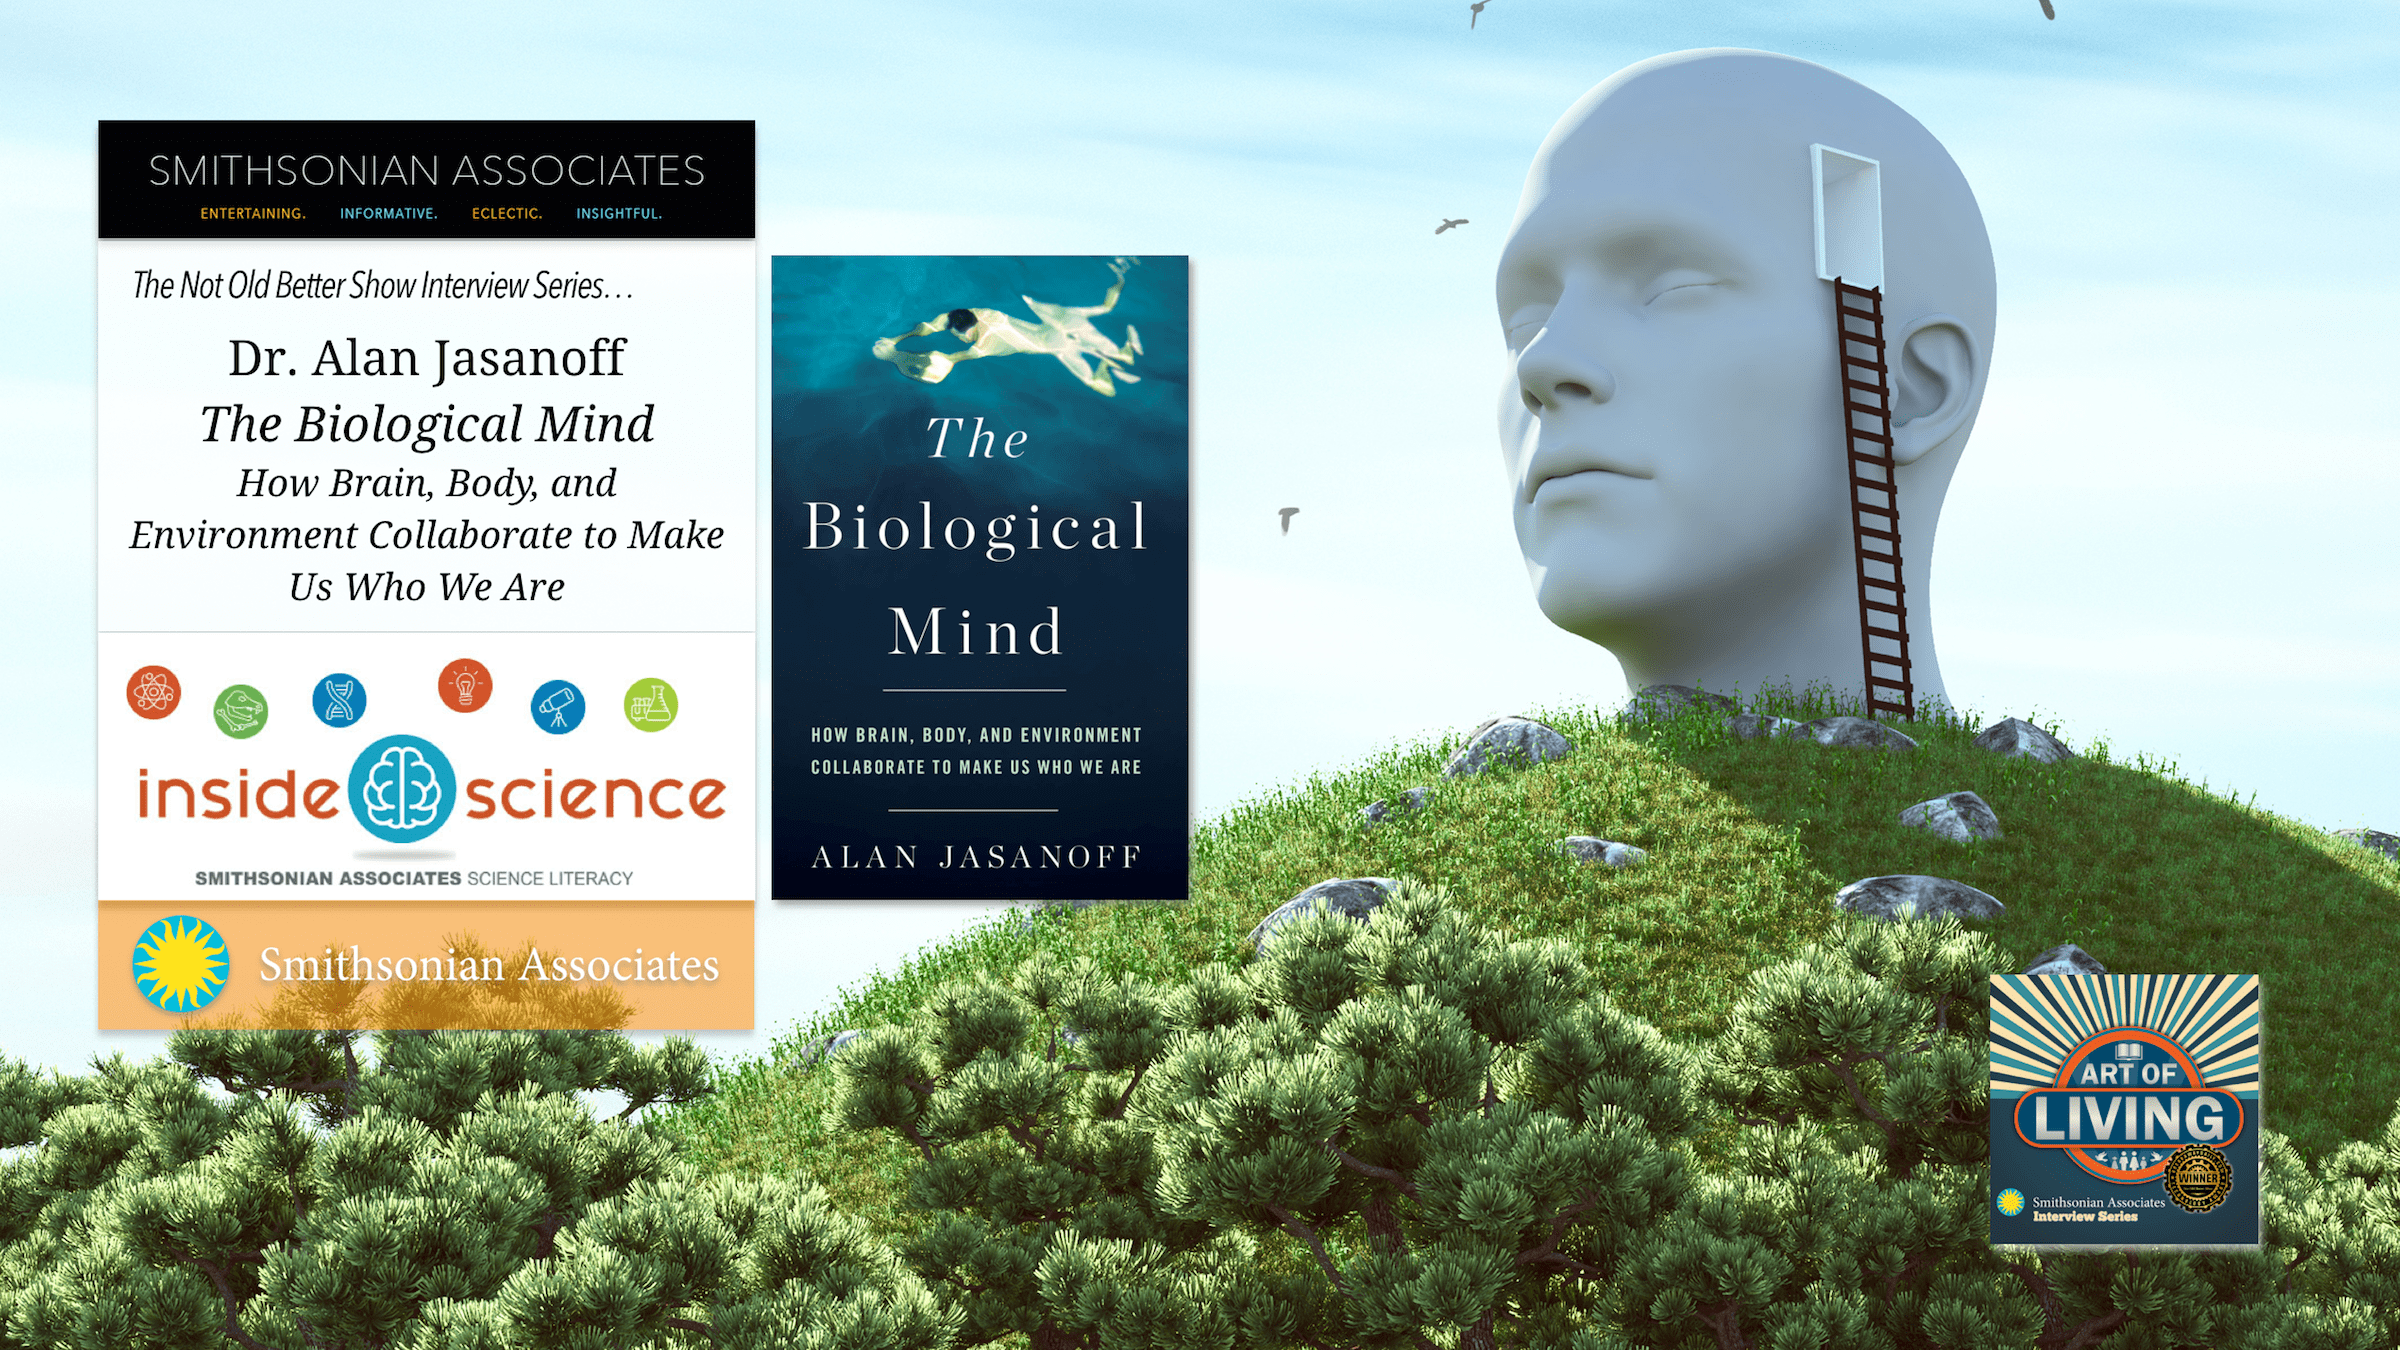 #196 Dr. Alan Jasanoff, The Biological Mind